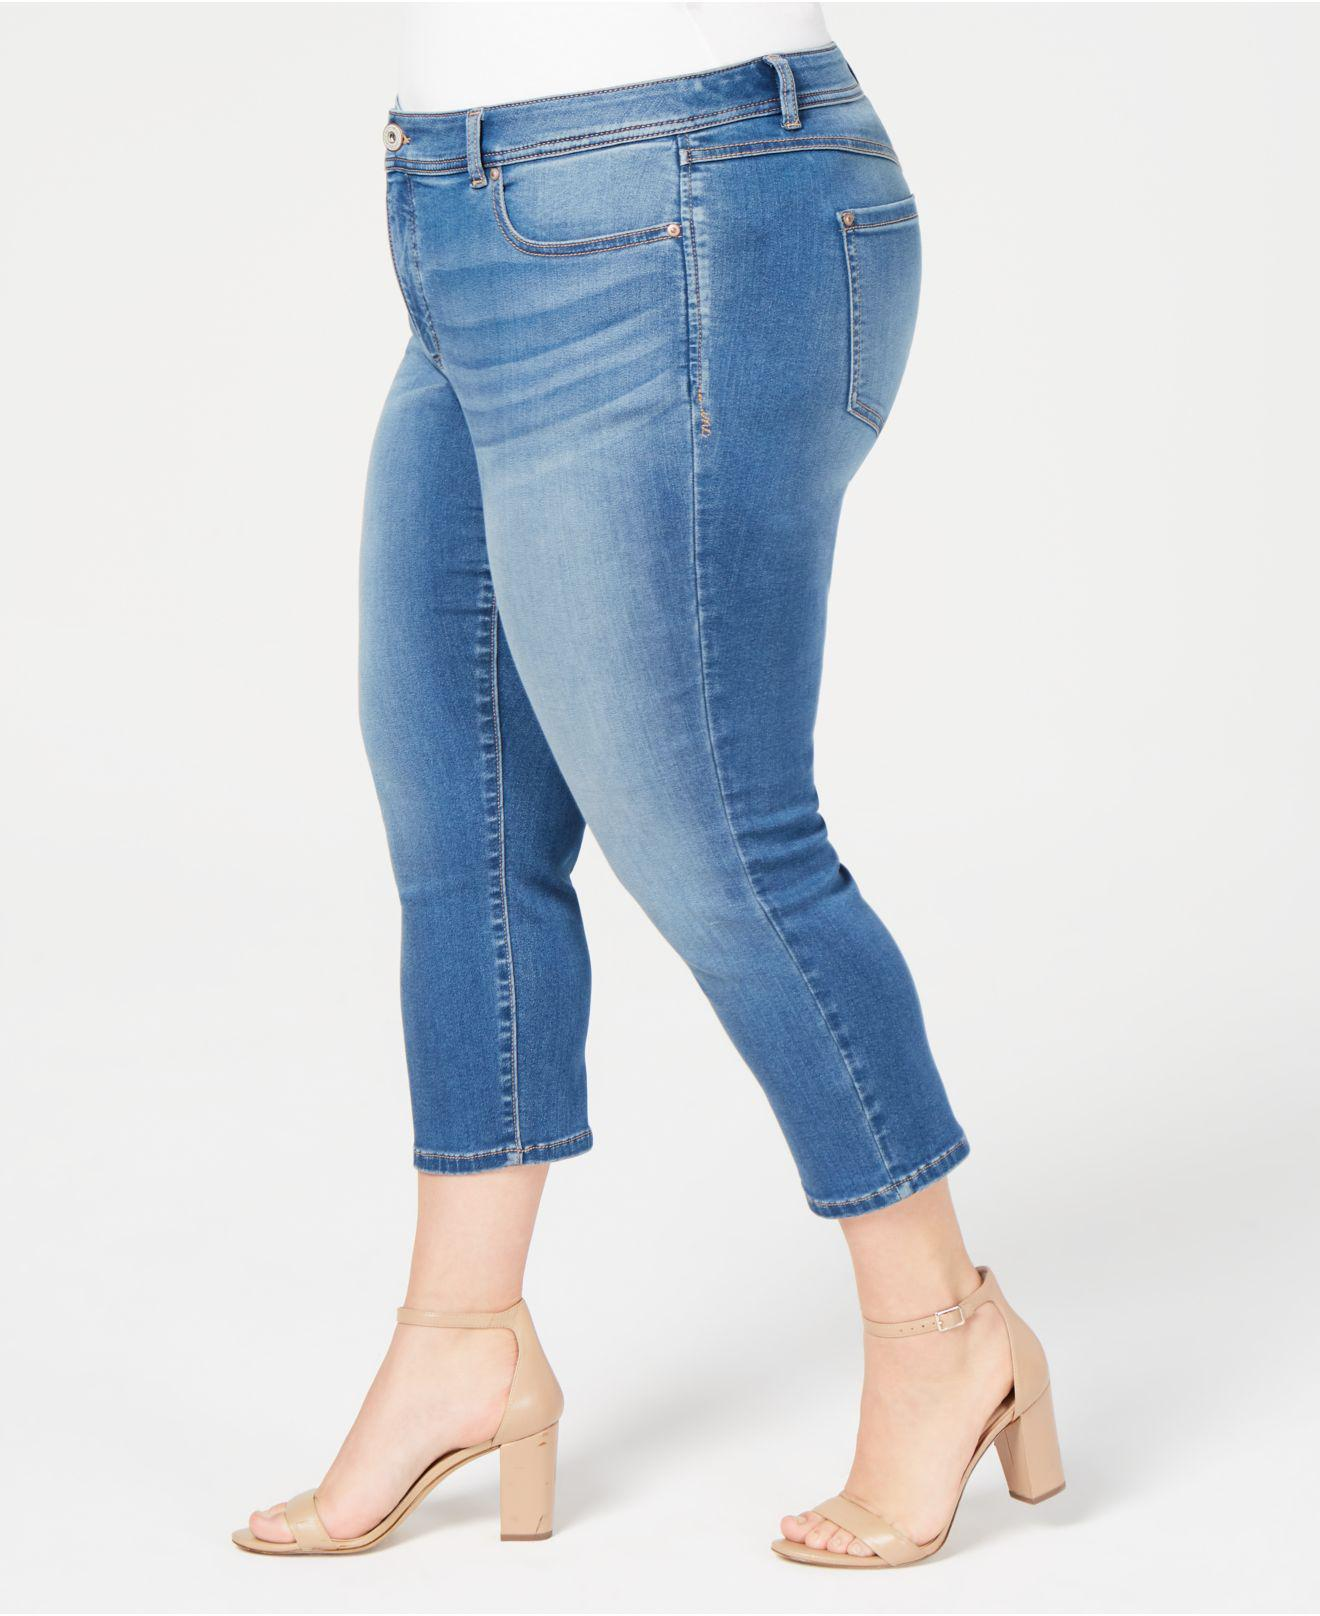 8a61b19af60b2 Lyst - Inc International Concepts I.n.c. Plus Size Incfinity Cropped Skinny  Jeans